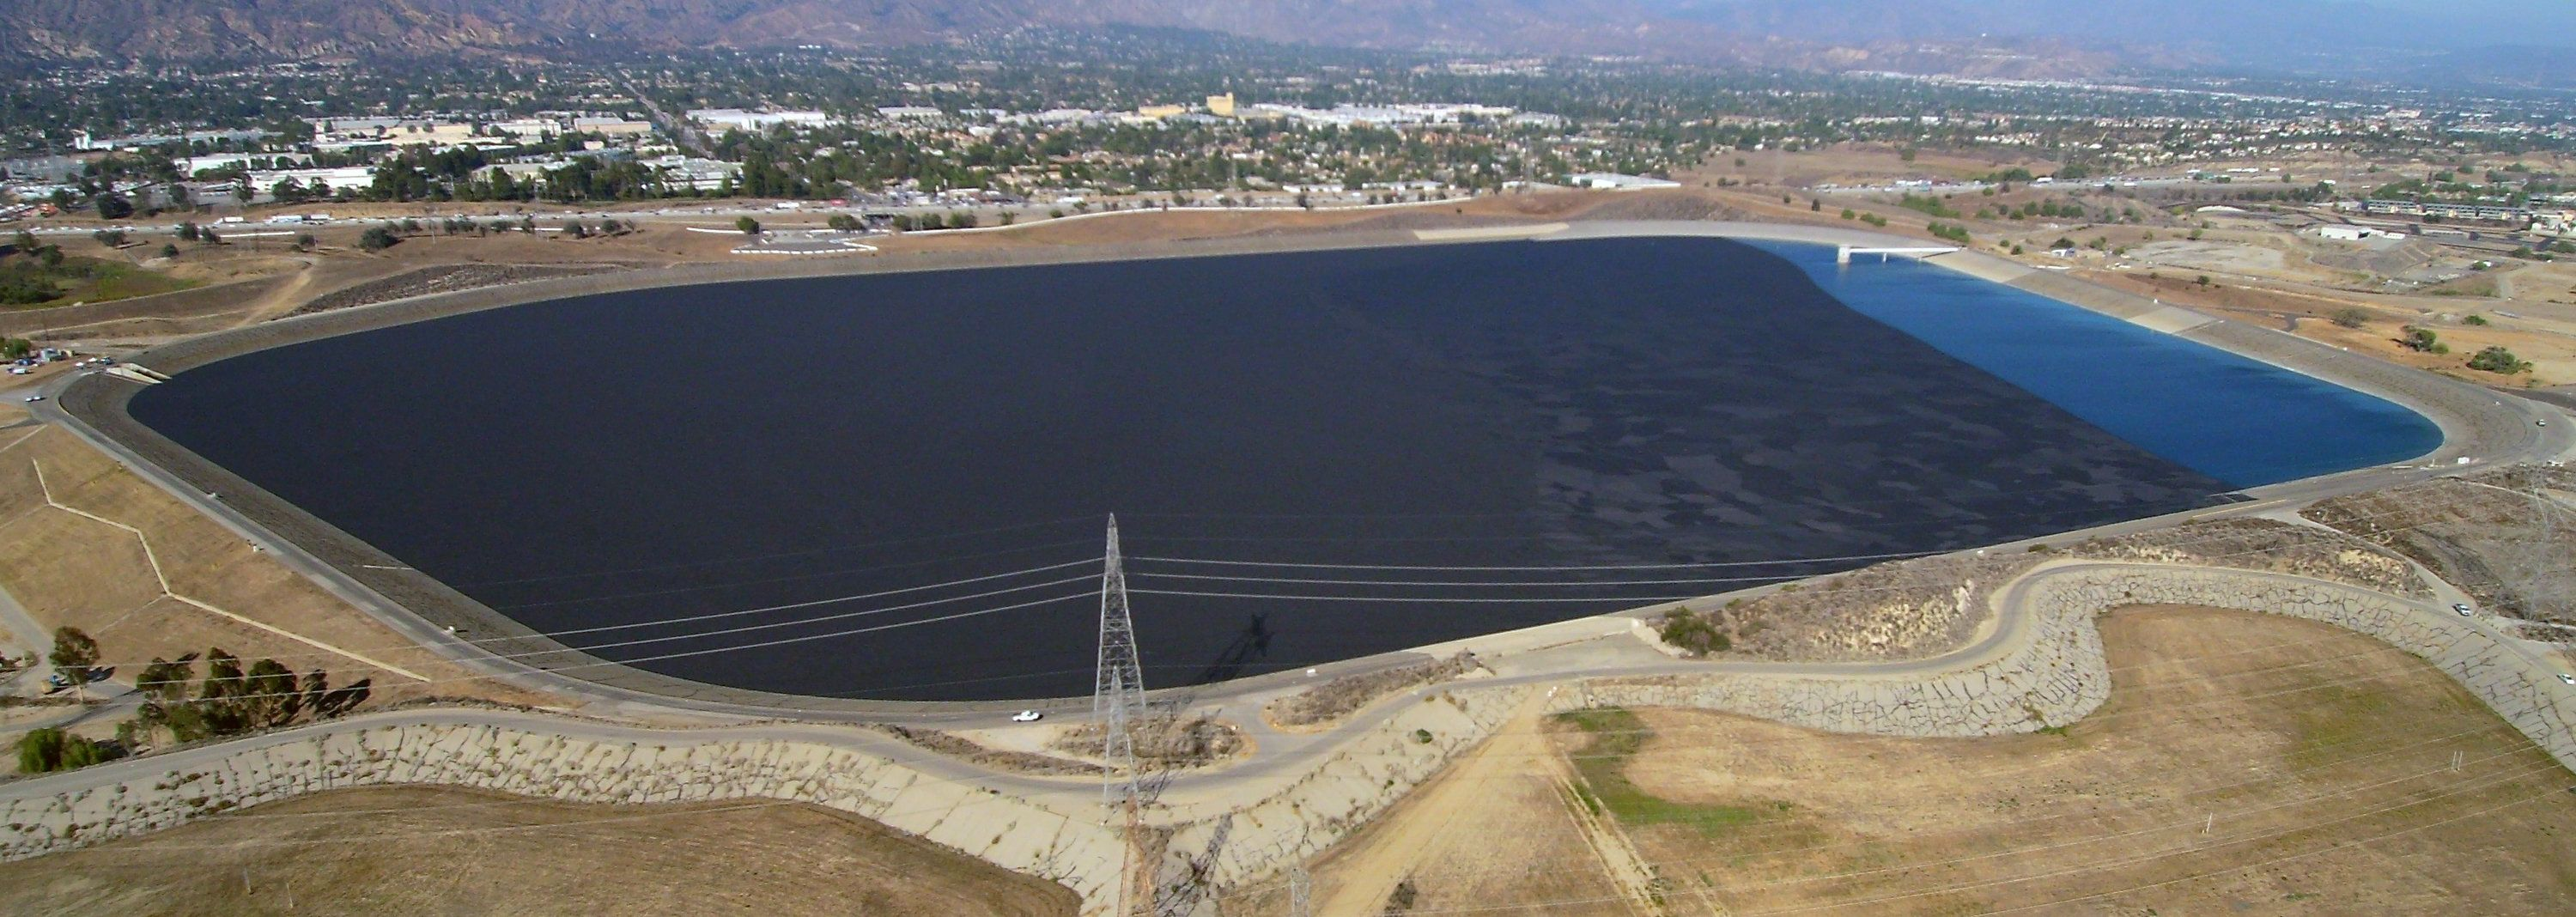 Millions Of 'Shade Balls' Protect LA's Water During Drought | HuffPost